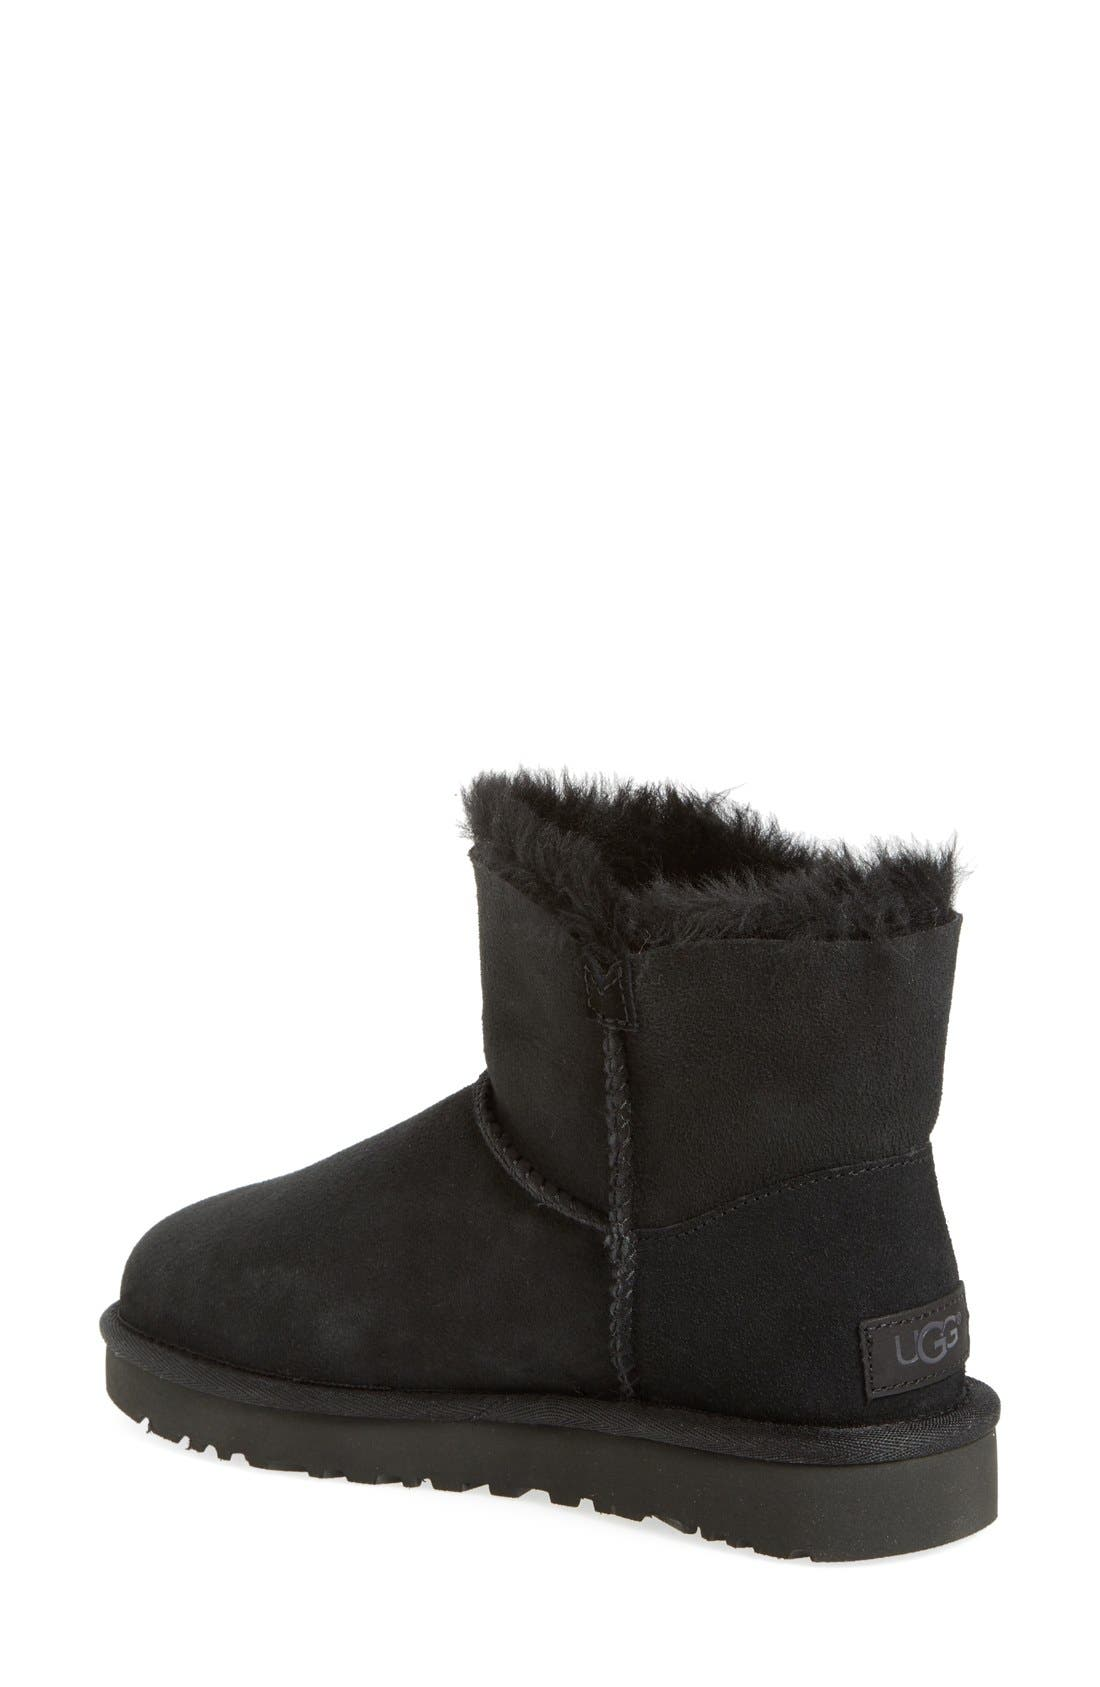 UGG<SUP>®</SUP>, Mini Bailey Button II Genuine Shearling Boot, Alternate thumbnail 2, color, BLACK SUEDE